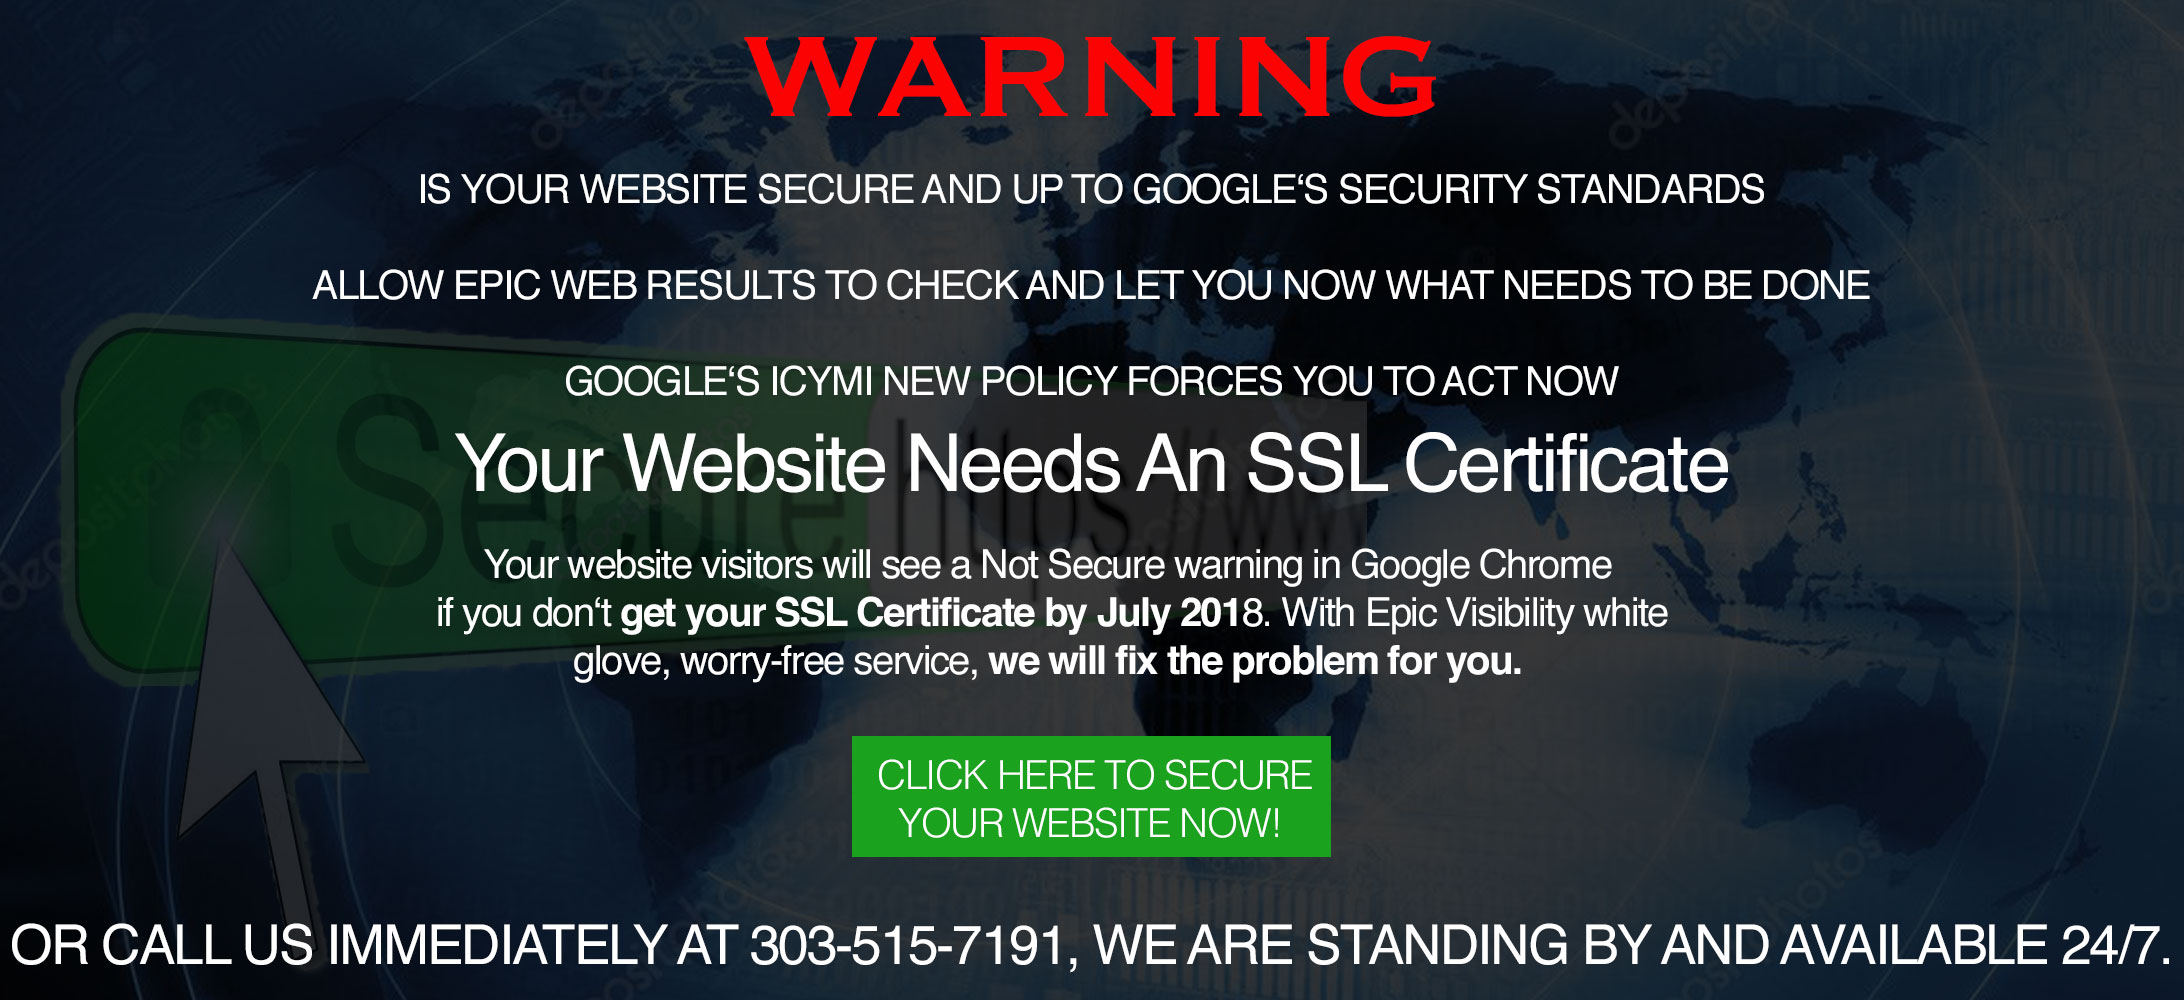 Epic-Visibility-SSL-Page